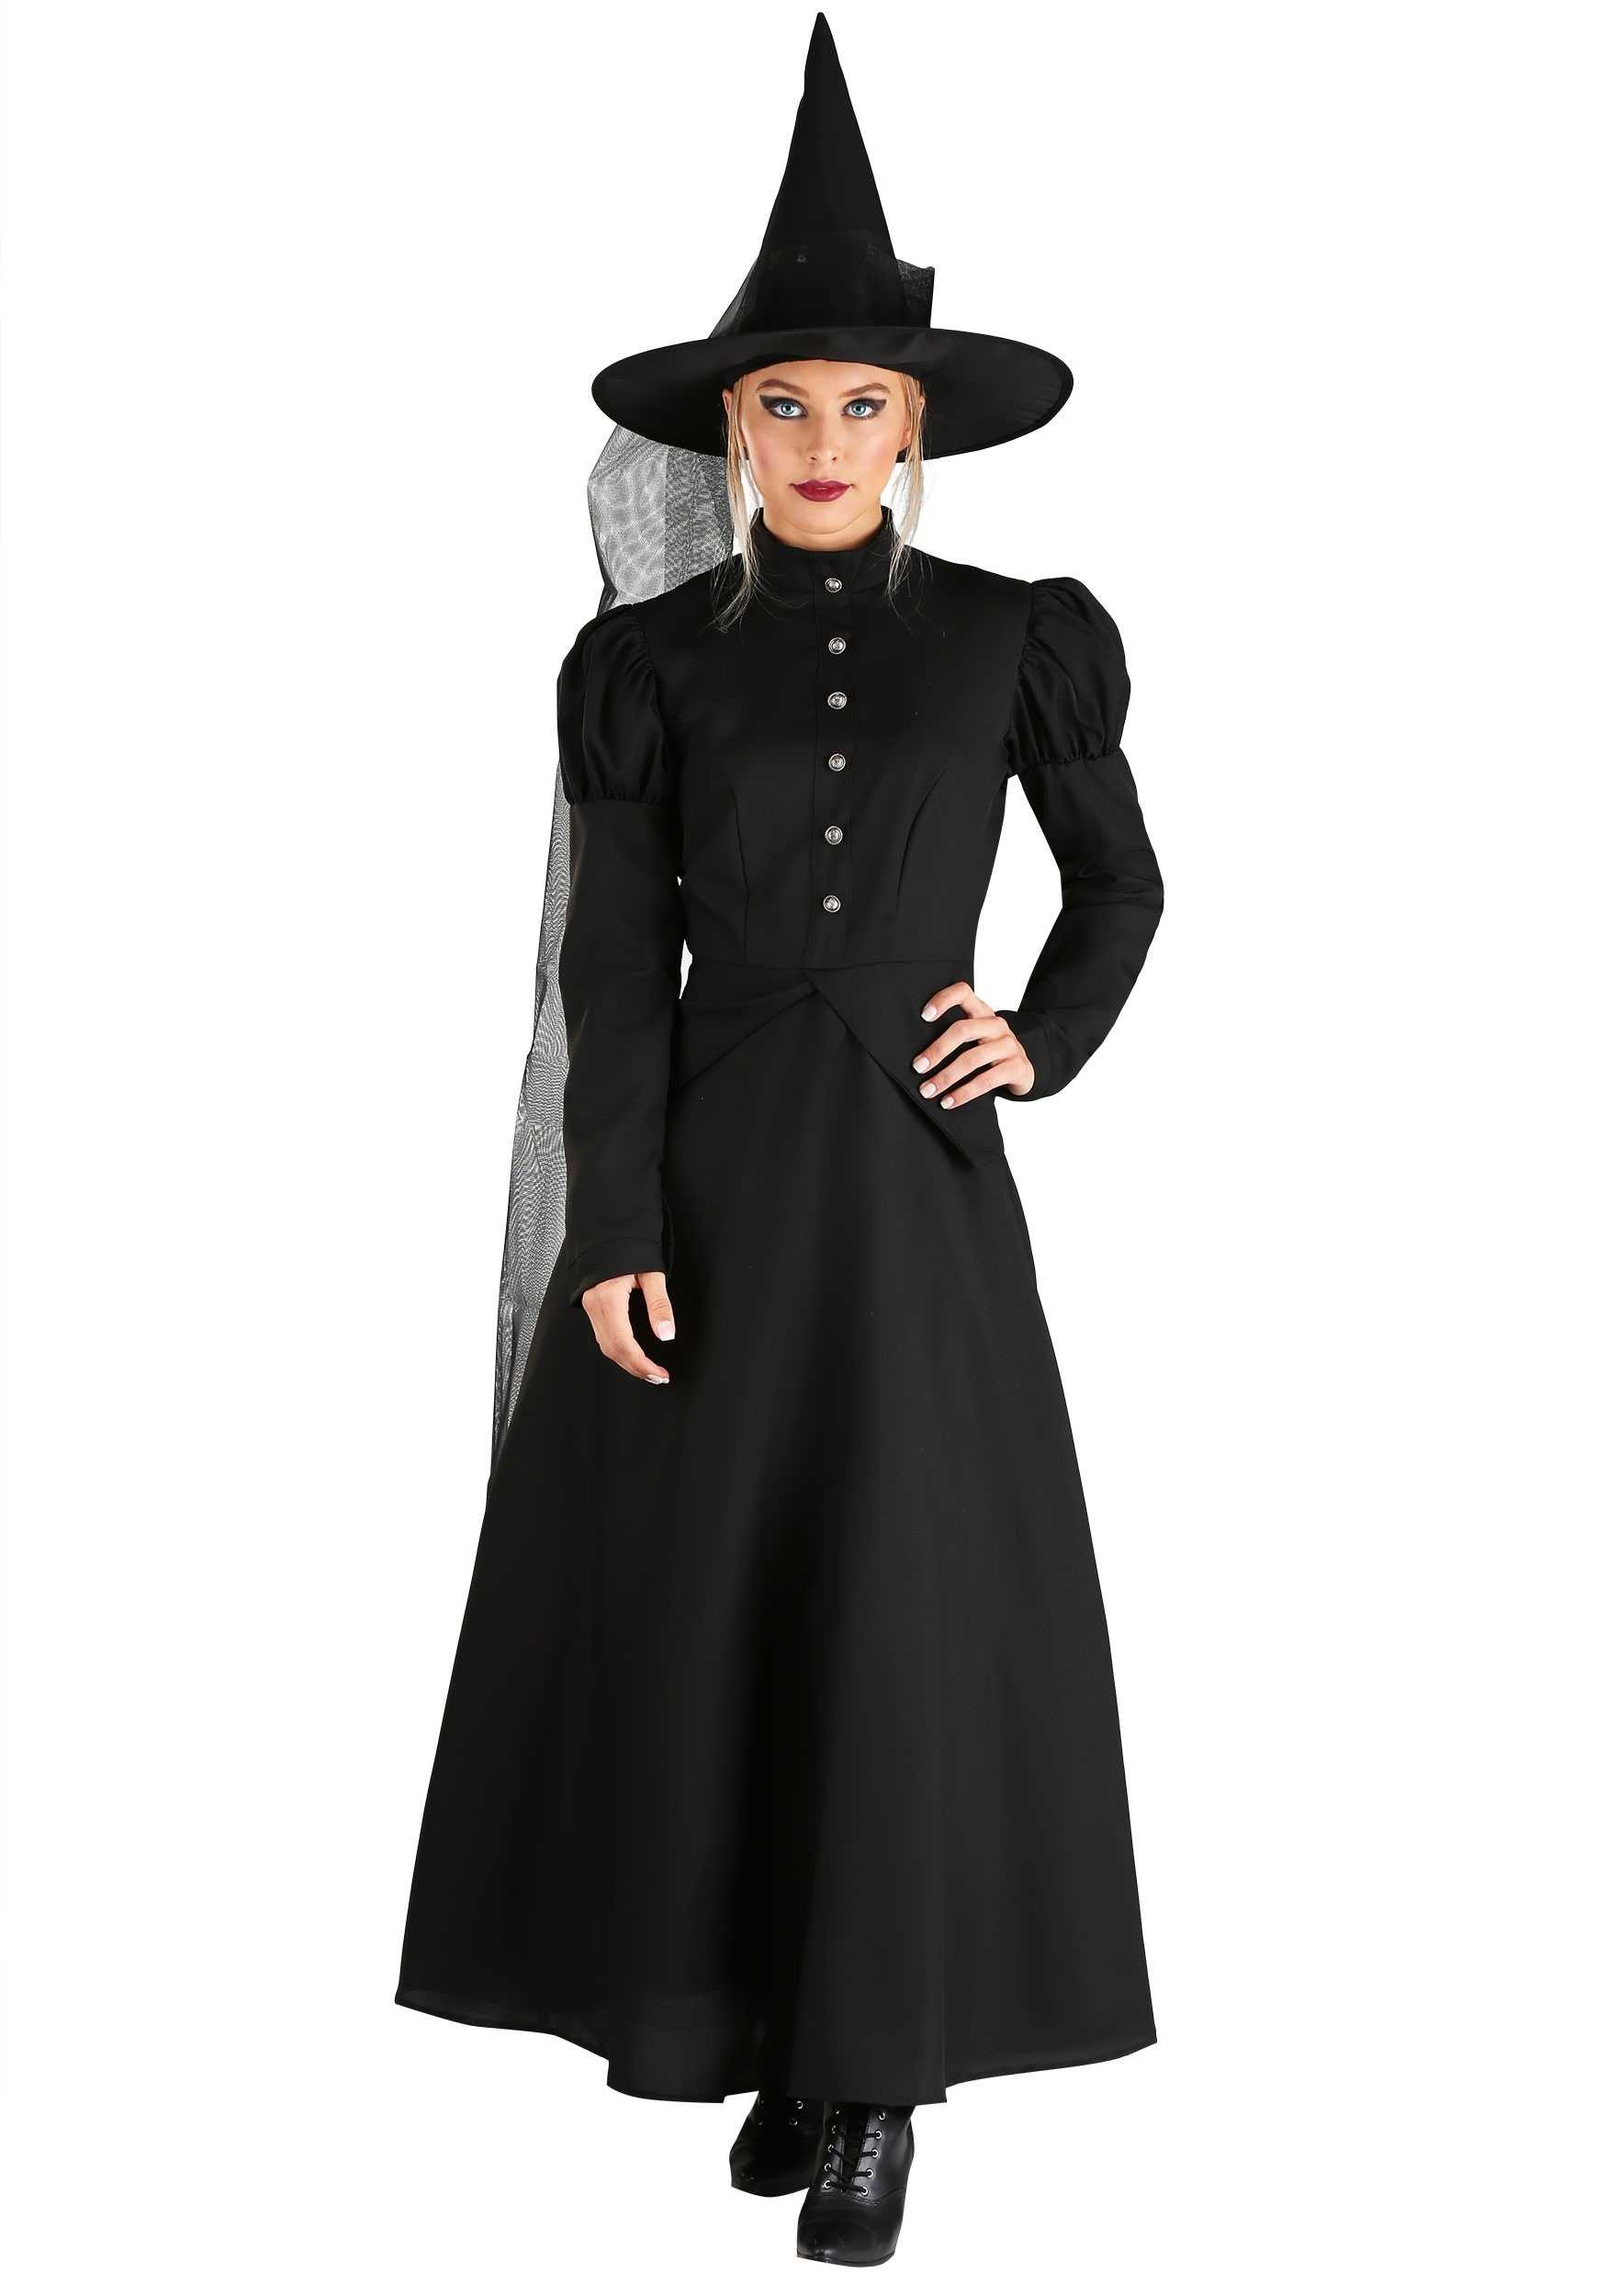 Deluxe Witch Costume for Women   Wicked Witch Costume   Exclusive